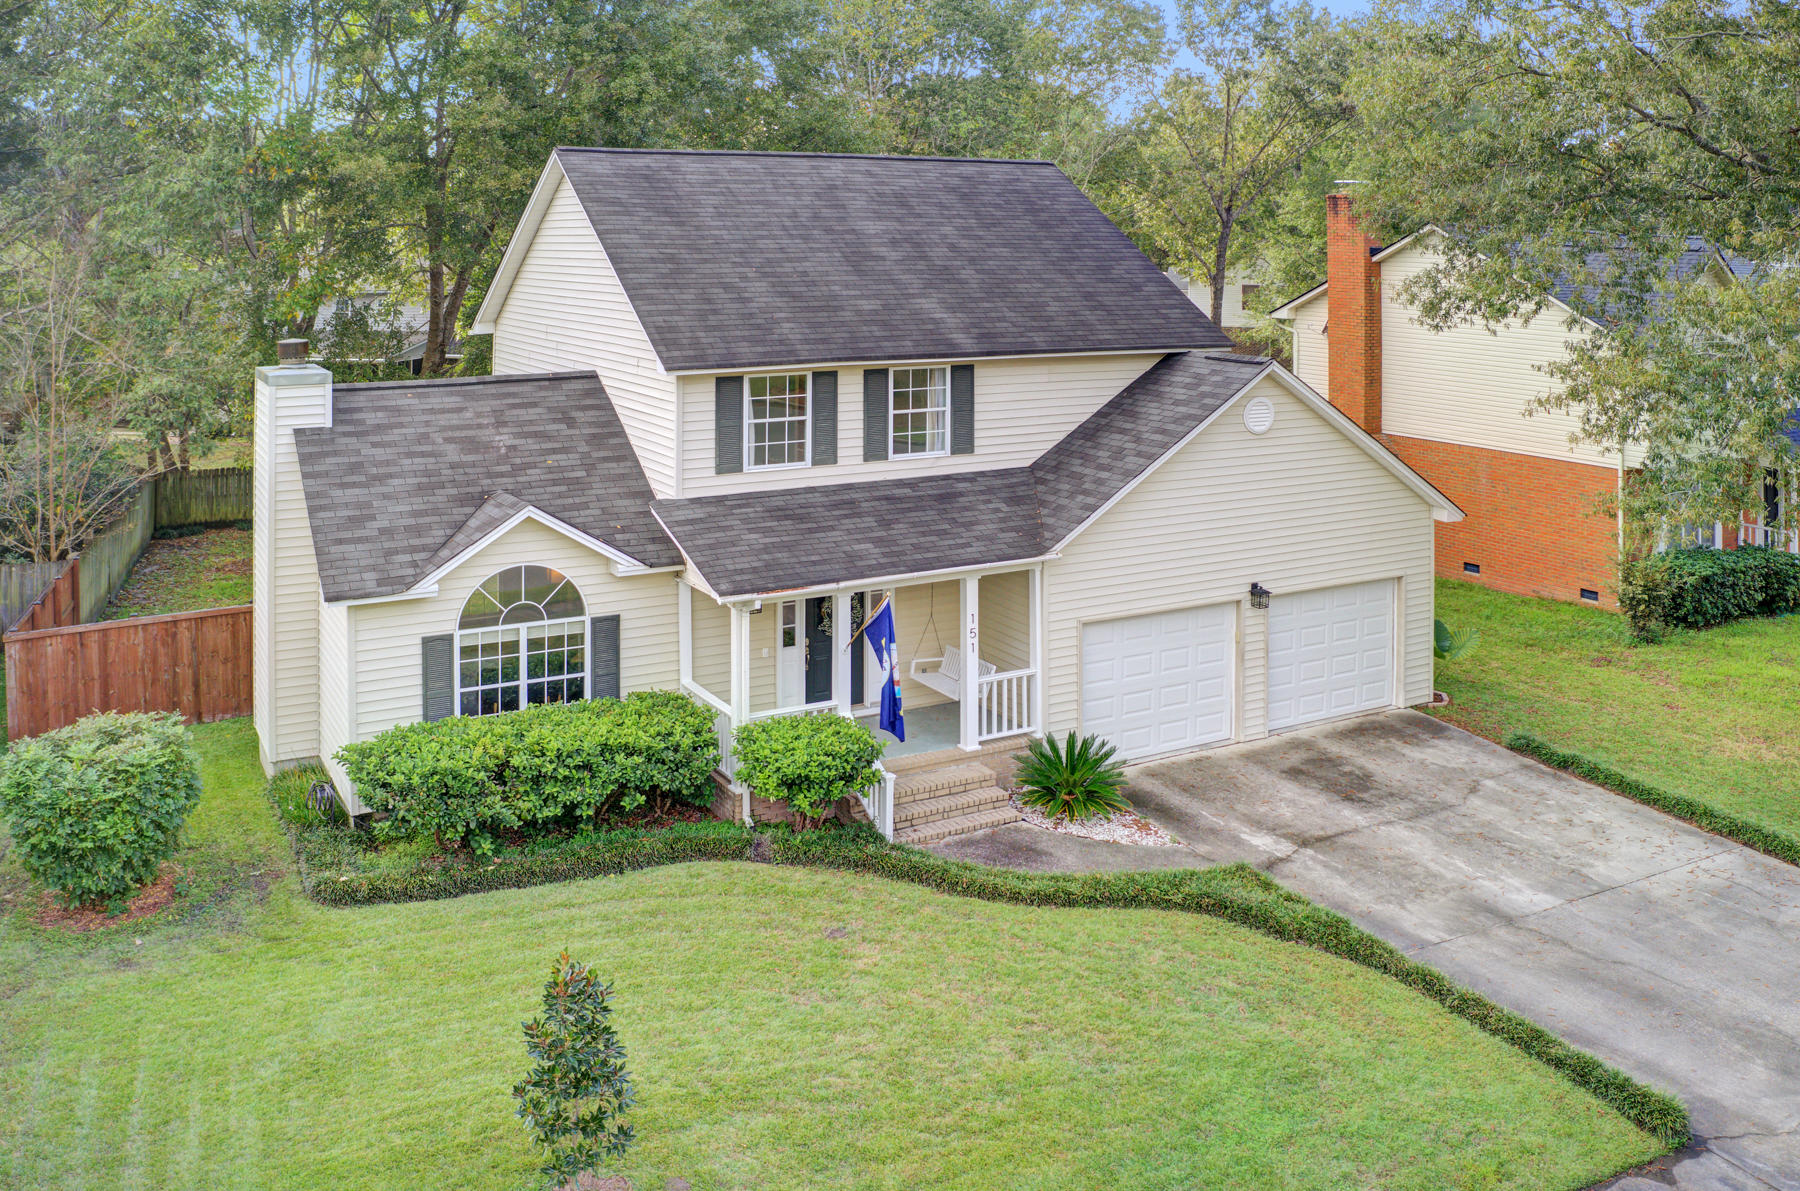 Crowfield Plantation Homes For Sale - 151 Winding Rock, Goose Creek, SC - 27